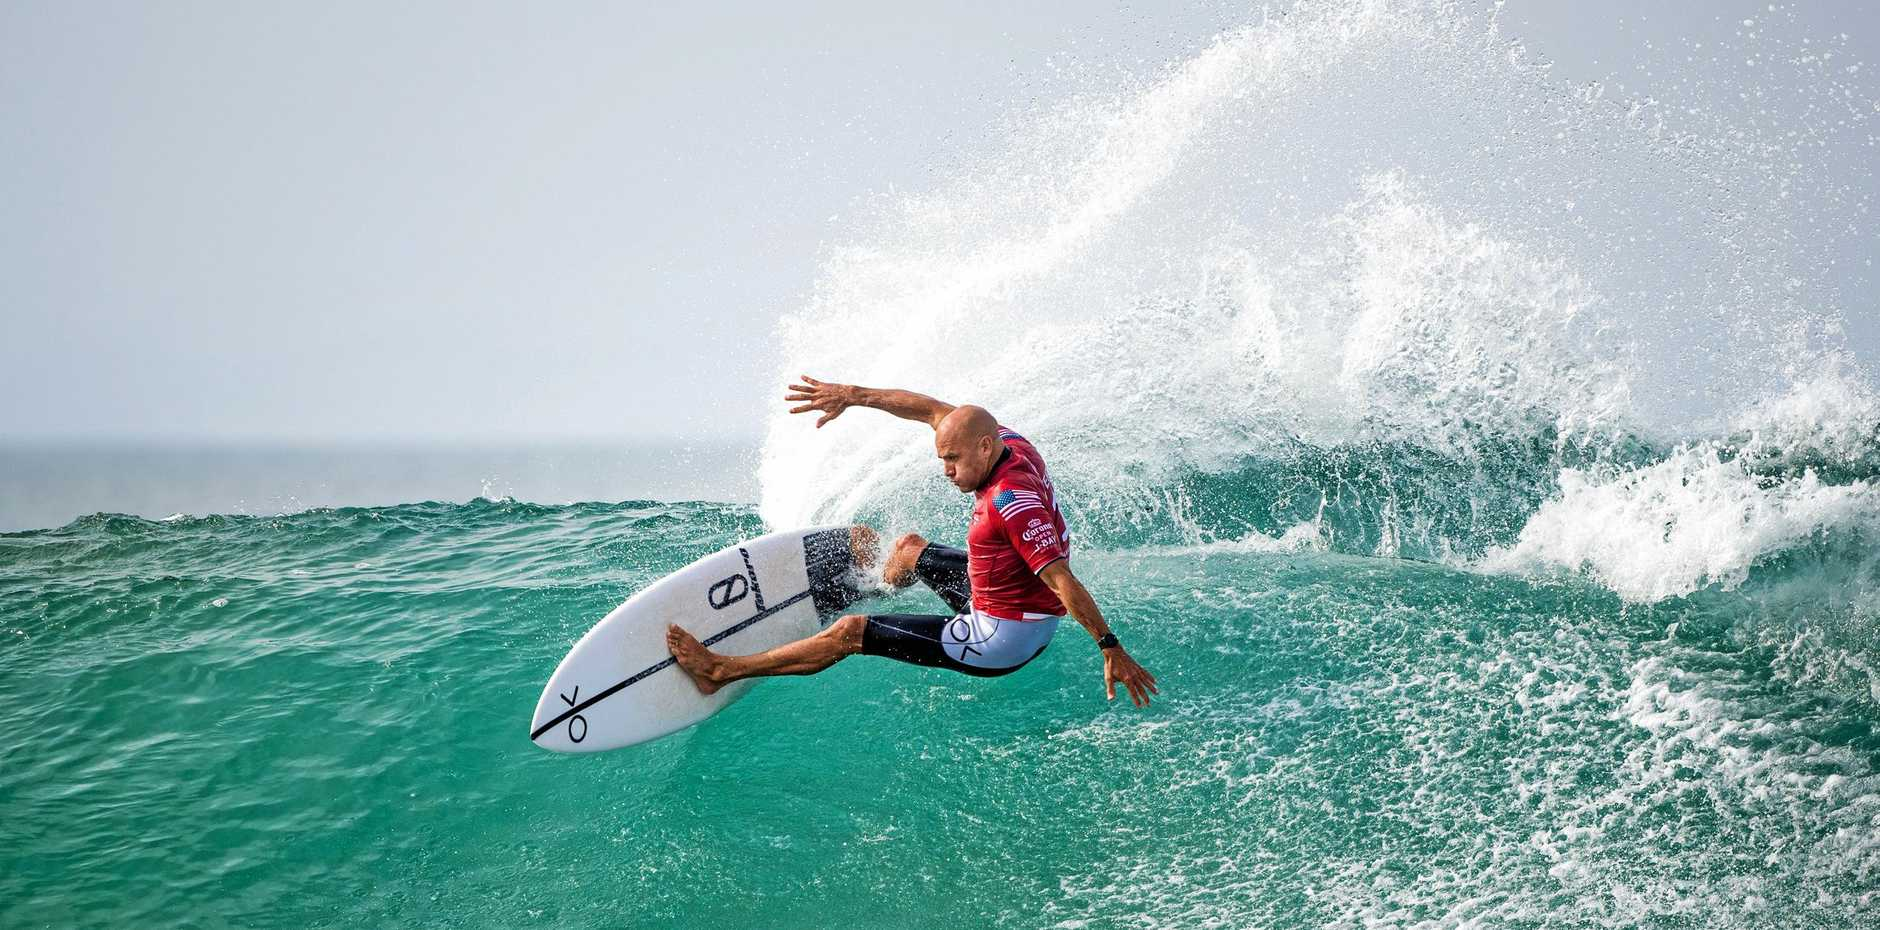 BOWING OUT: Eleven-time WSL Champion Kelly Slater of the US was eliminated from the 2019 Corona Open J-Bay with an equal ninth finish after placing second in Heat 8 of Round 4 at Jeffreys Bay, South Africa.